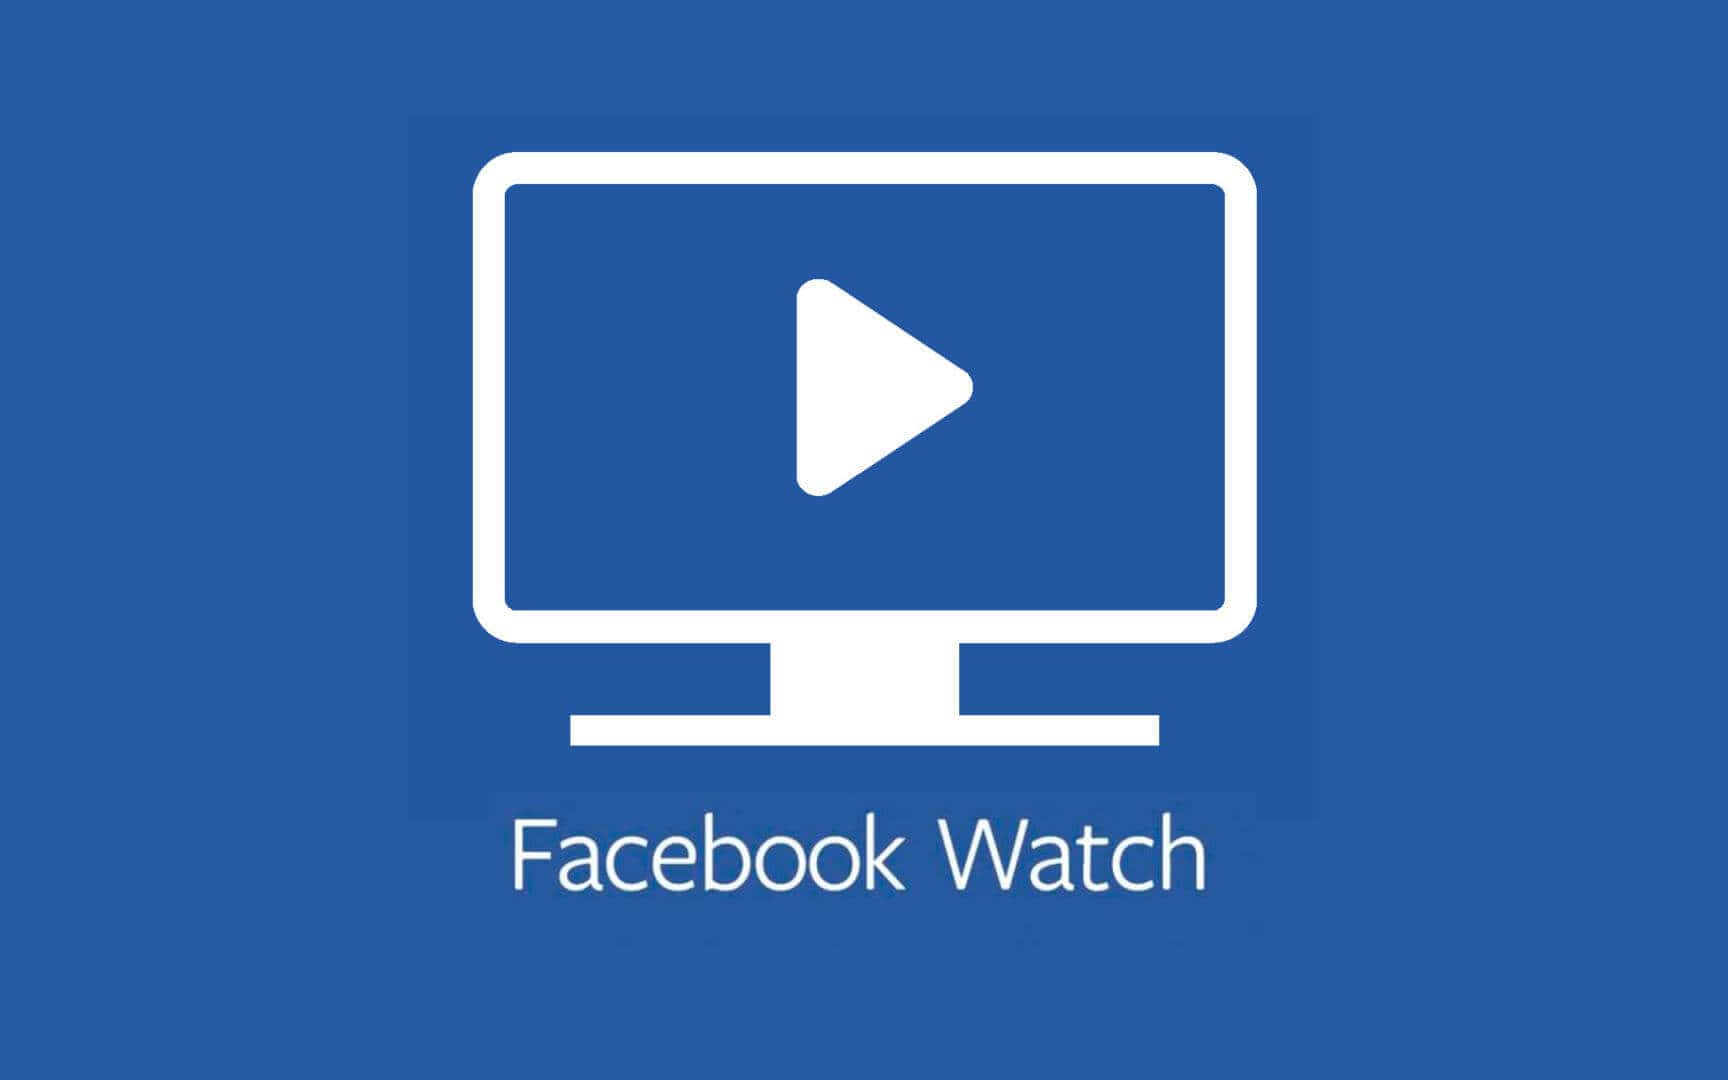 ¿Conoces Facebook Watch?